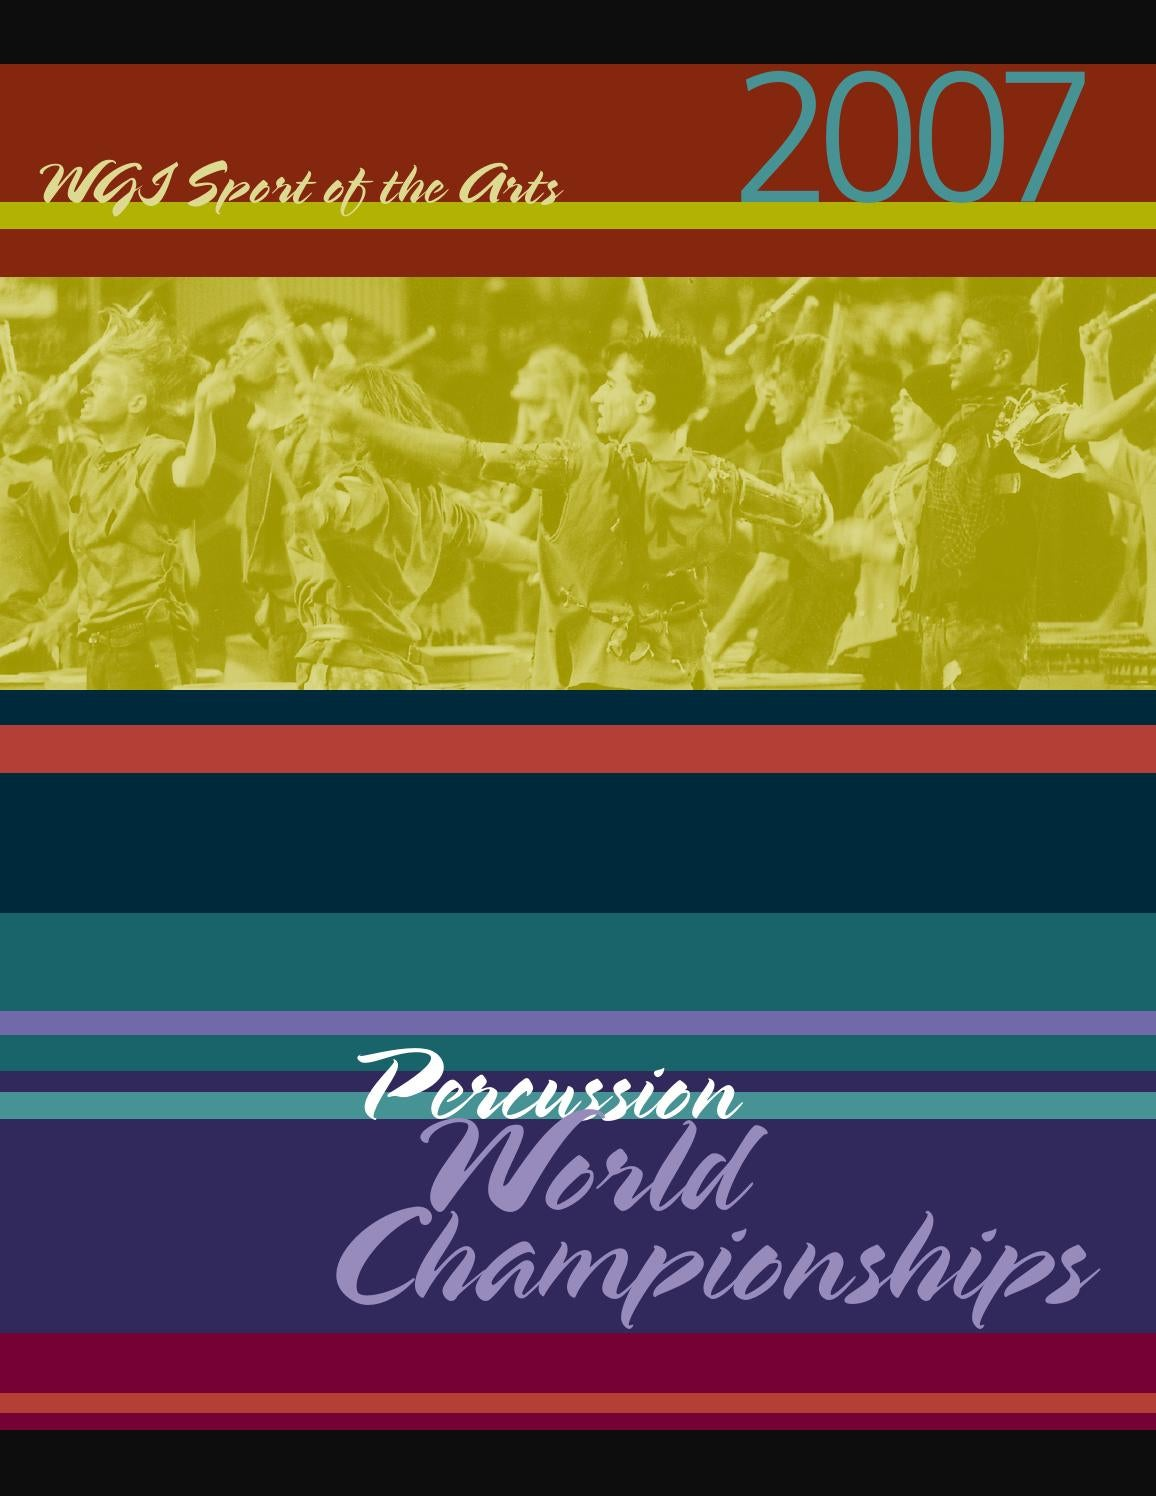 2007 wgi percussion world championships program by